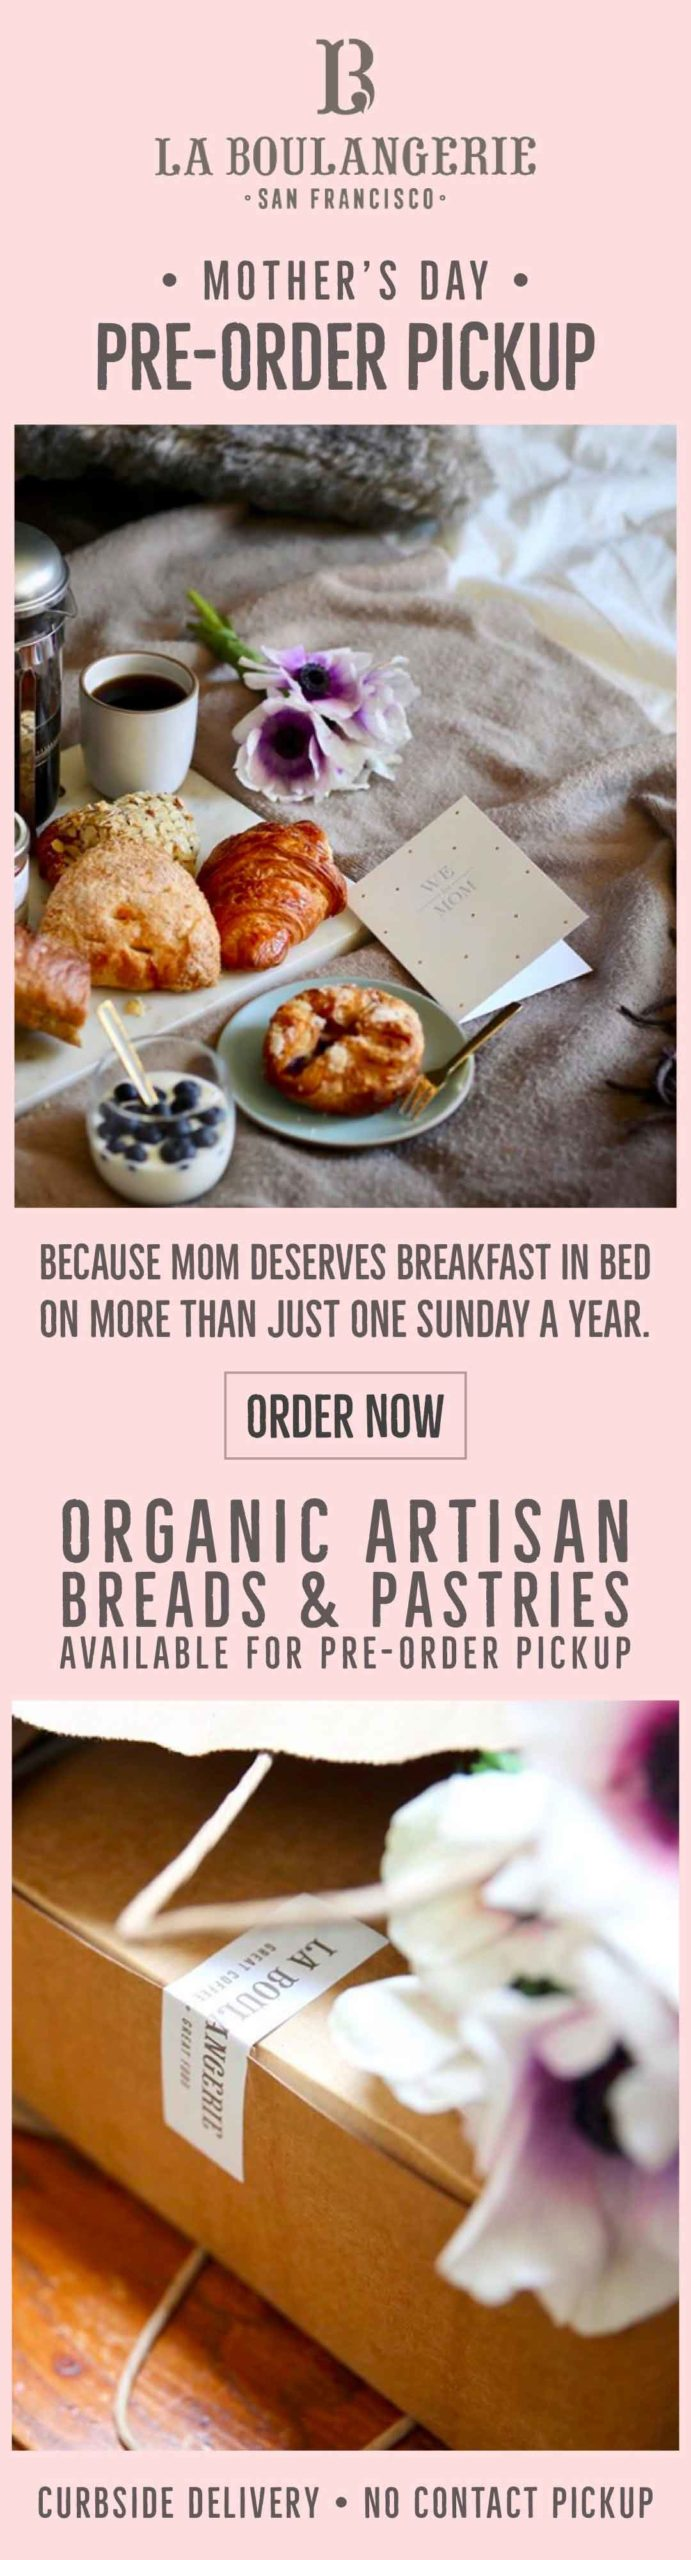 La Boulangerie: Mother's Day Email